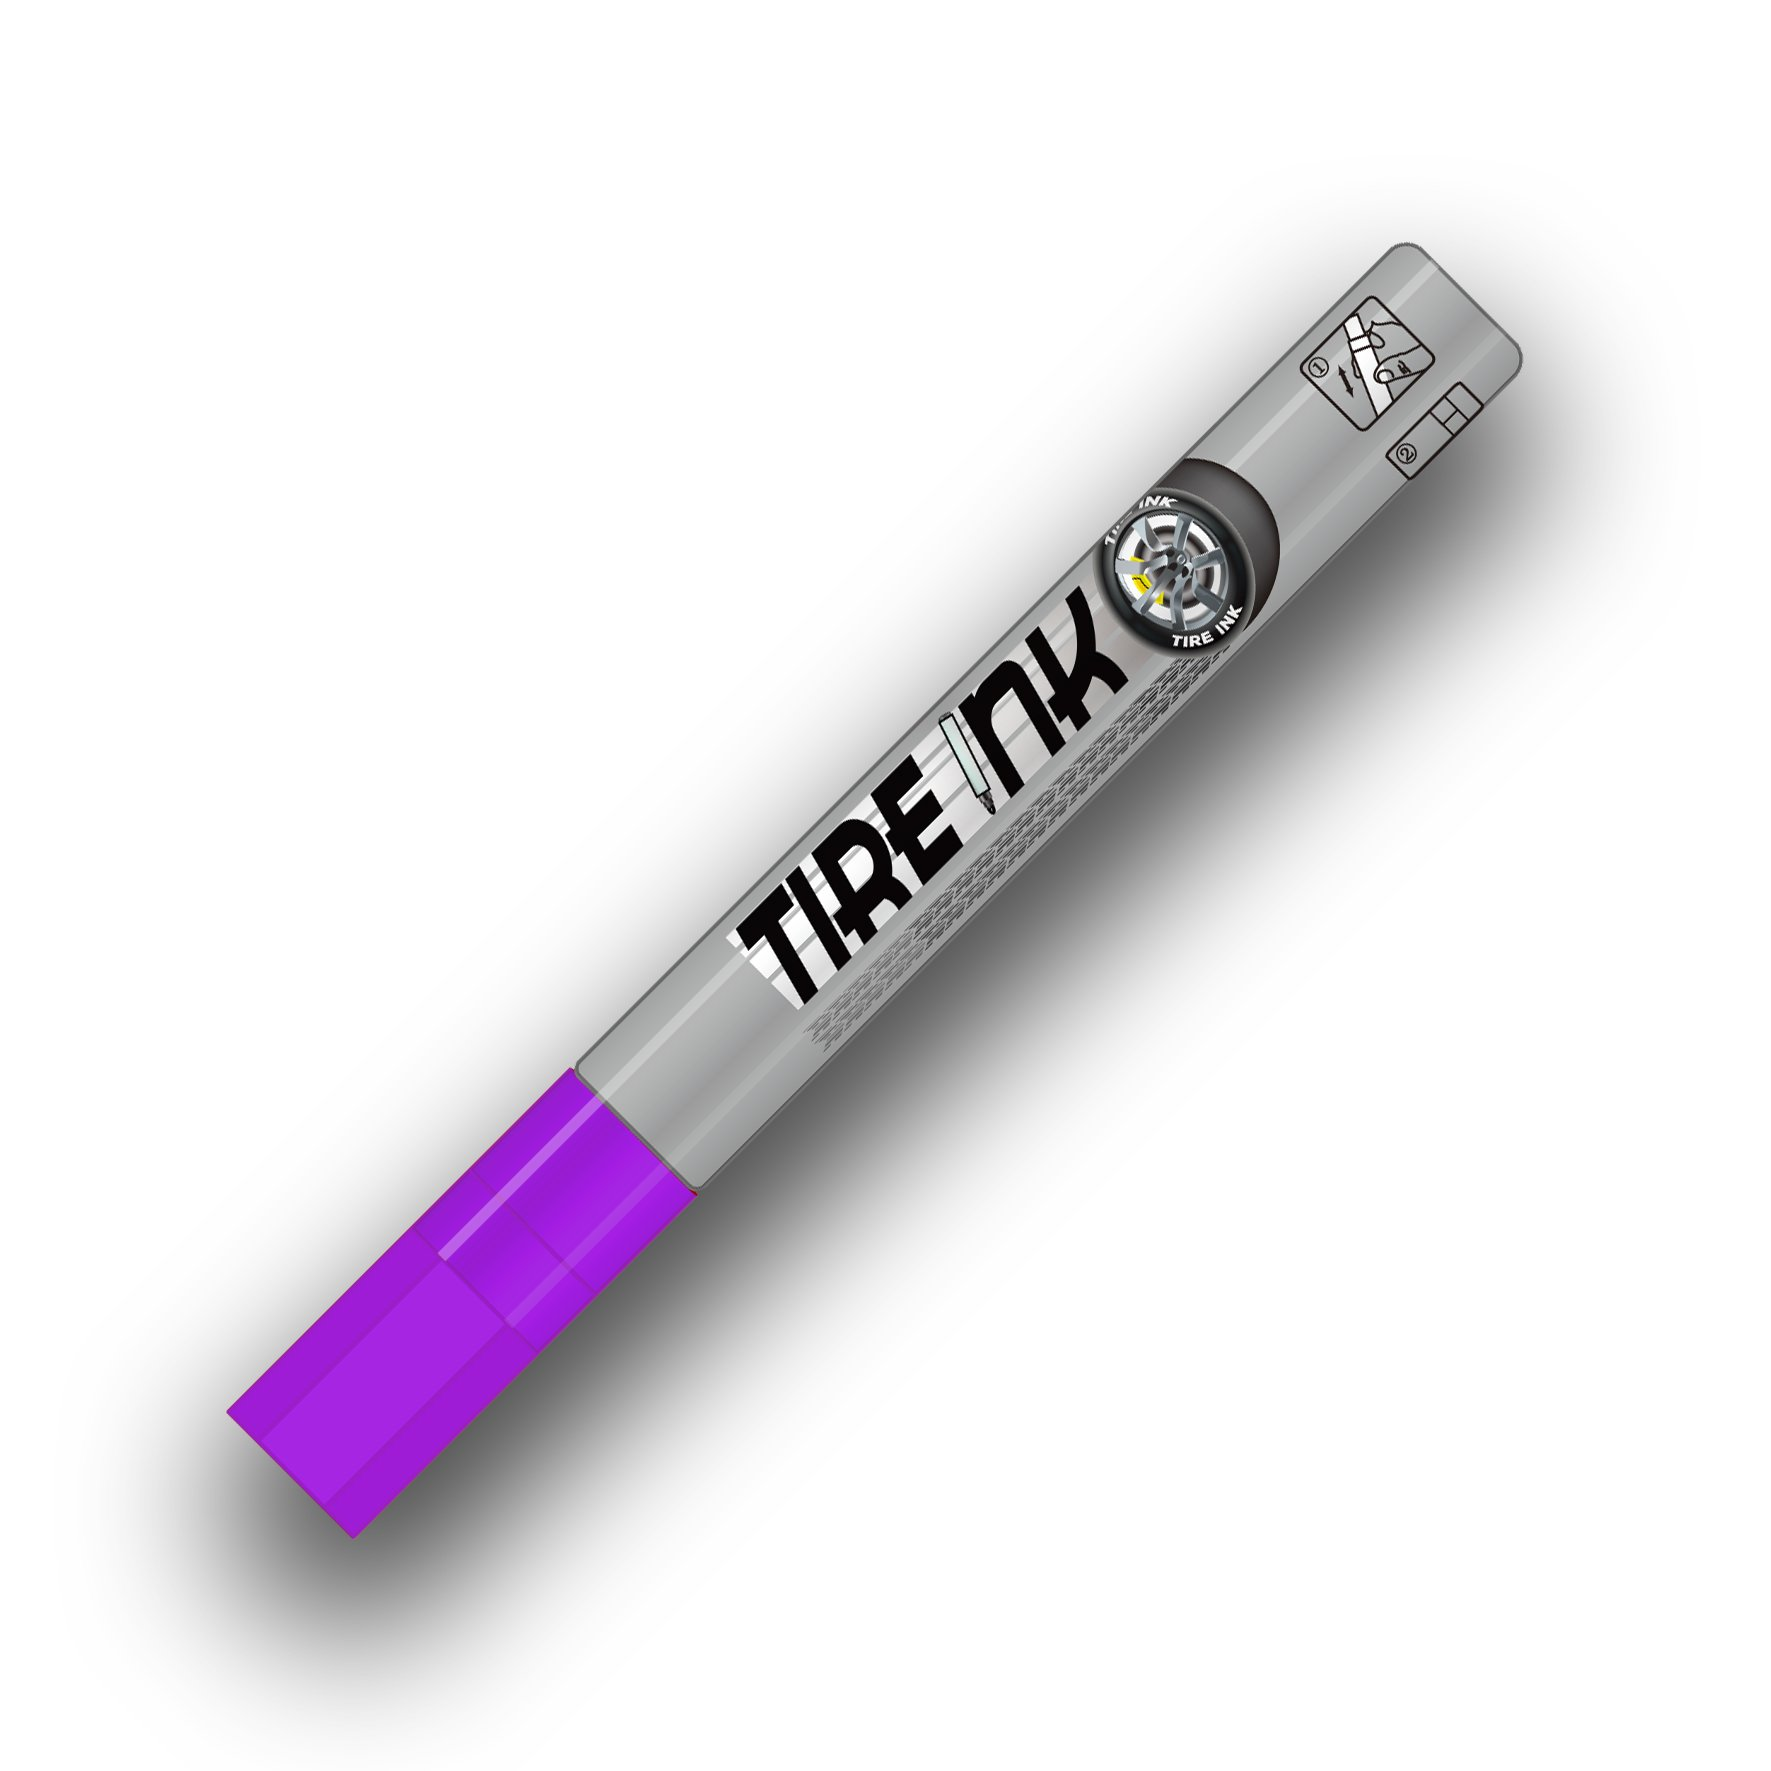 Tire Ink Paint Pen For Car Tires | Permanent and Waterproof | Carwash Safe | 8 Colors Available. (Purple, 1 Pen) by Tire Ink (Image #3)